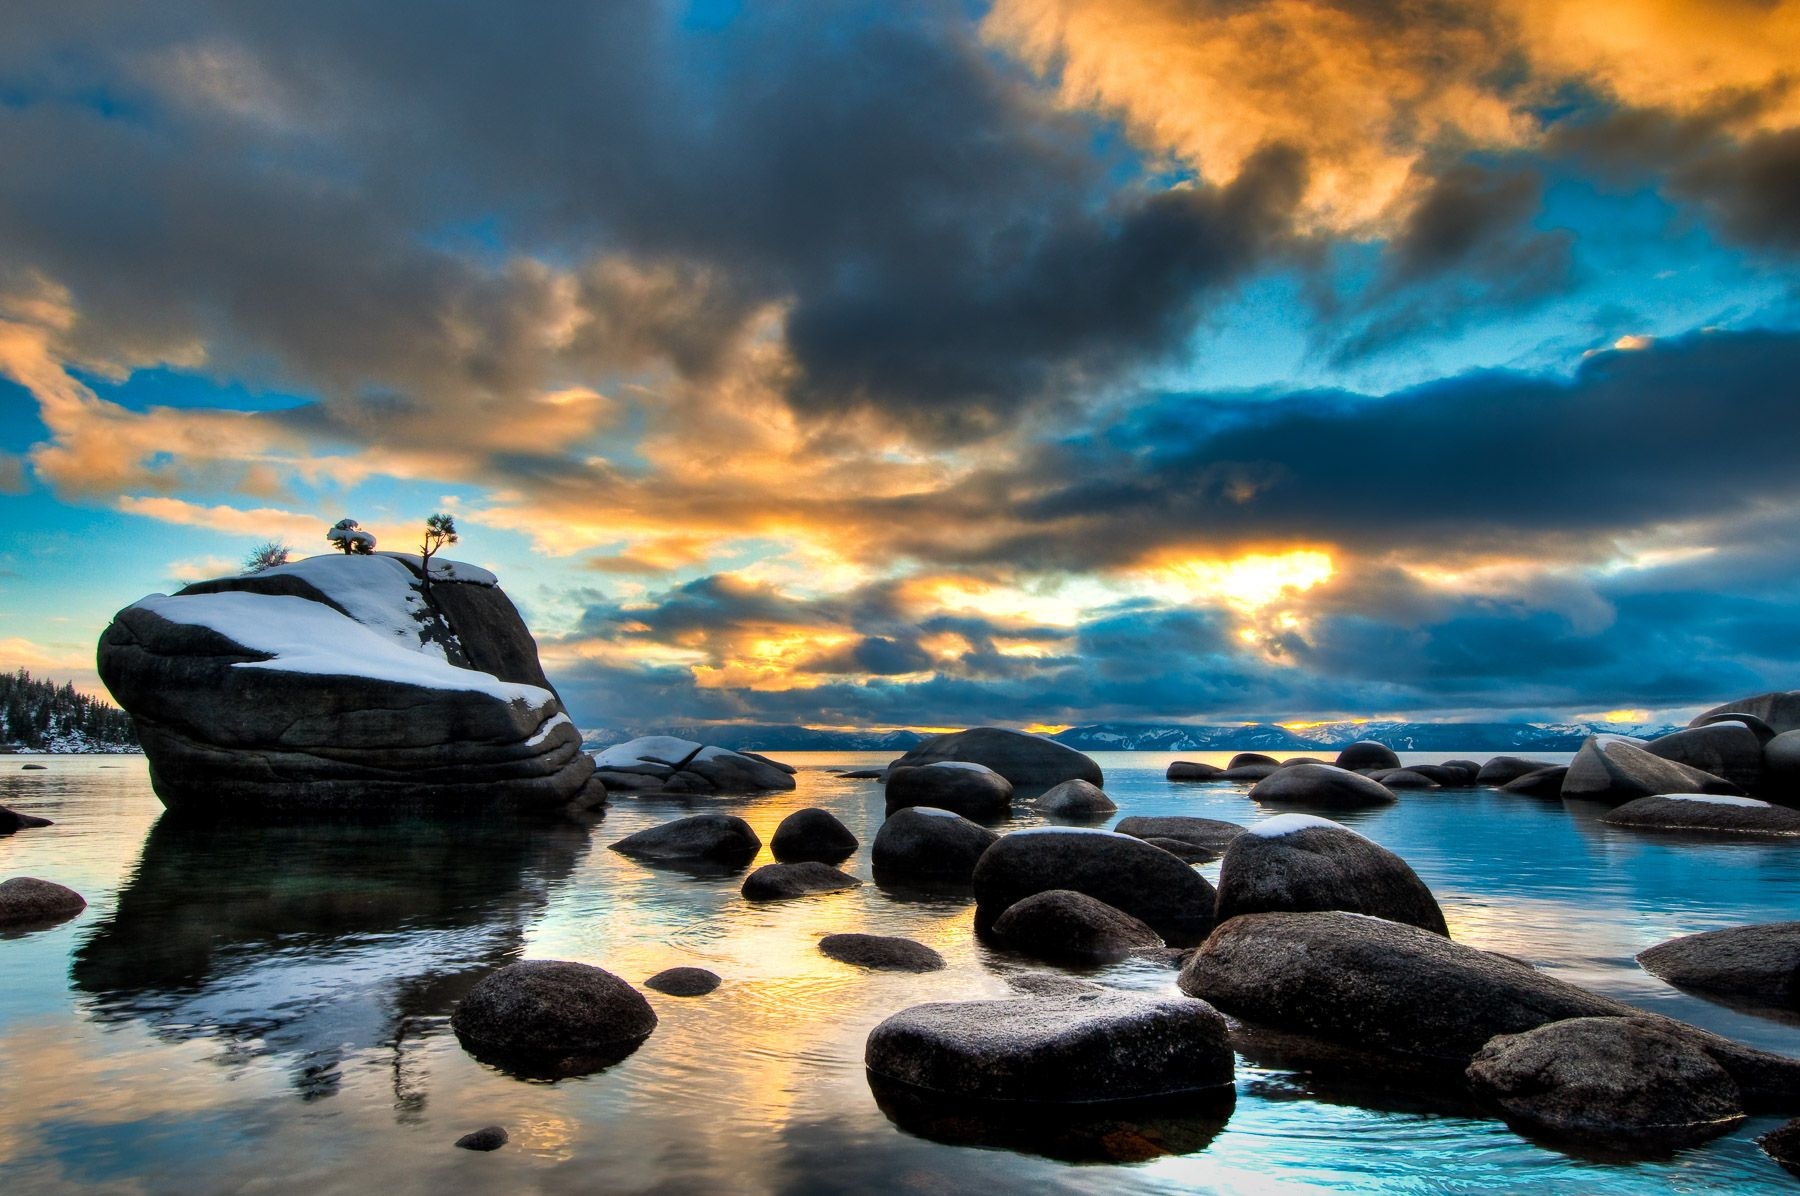 Stormy Sunset over Lake Tahoe and Bonsai Rock